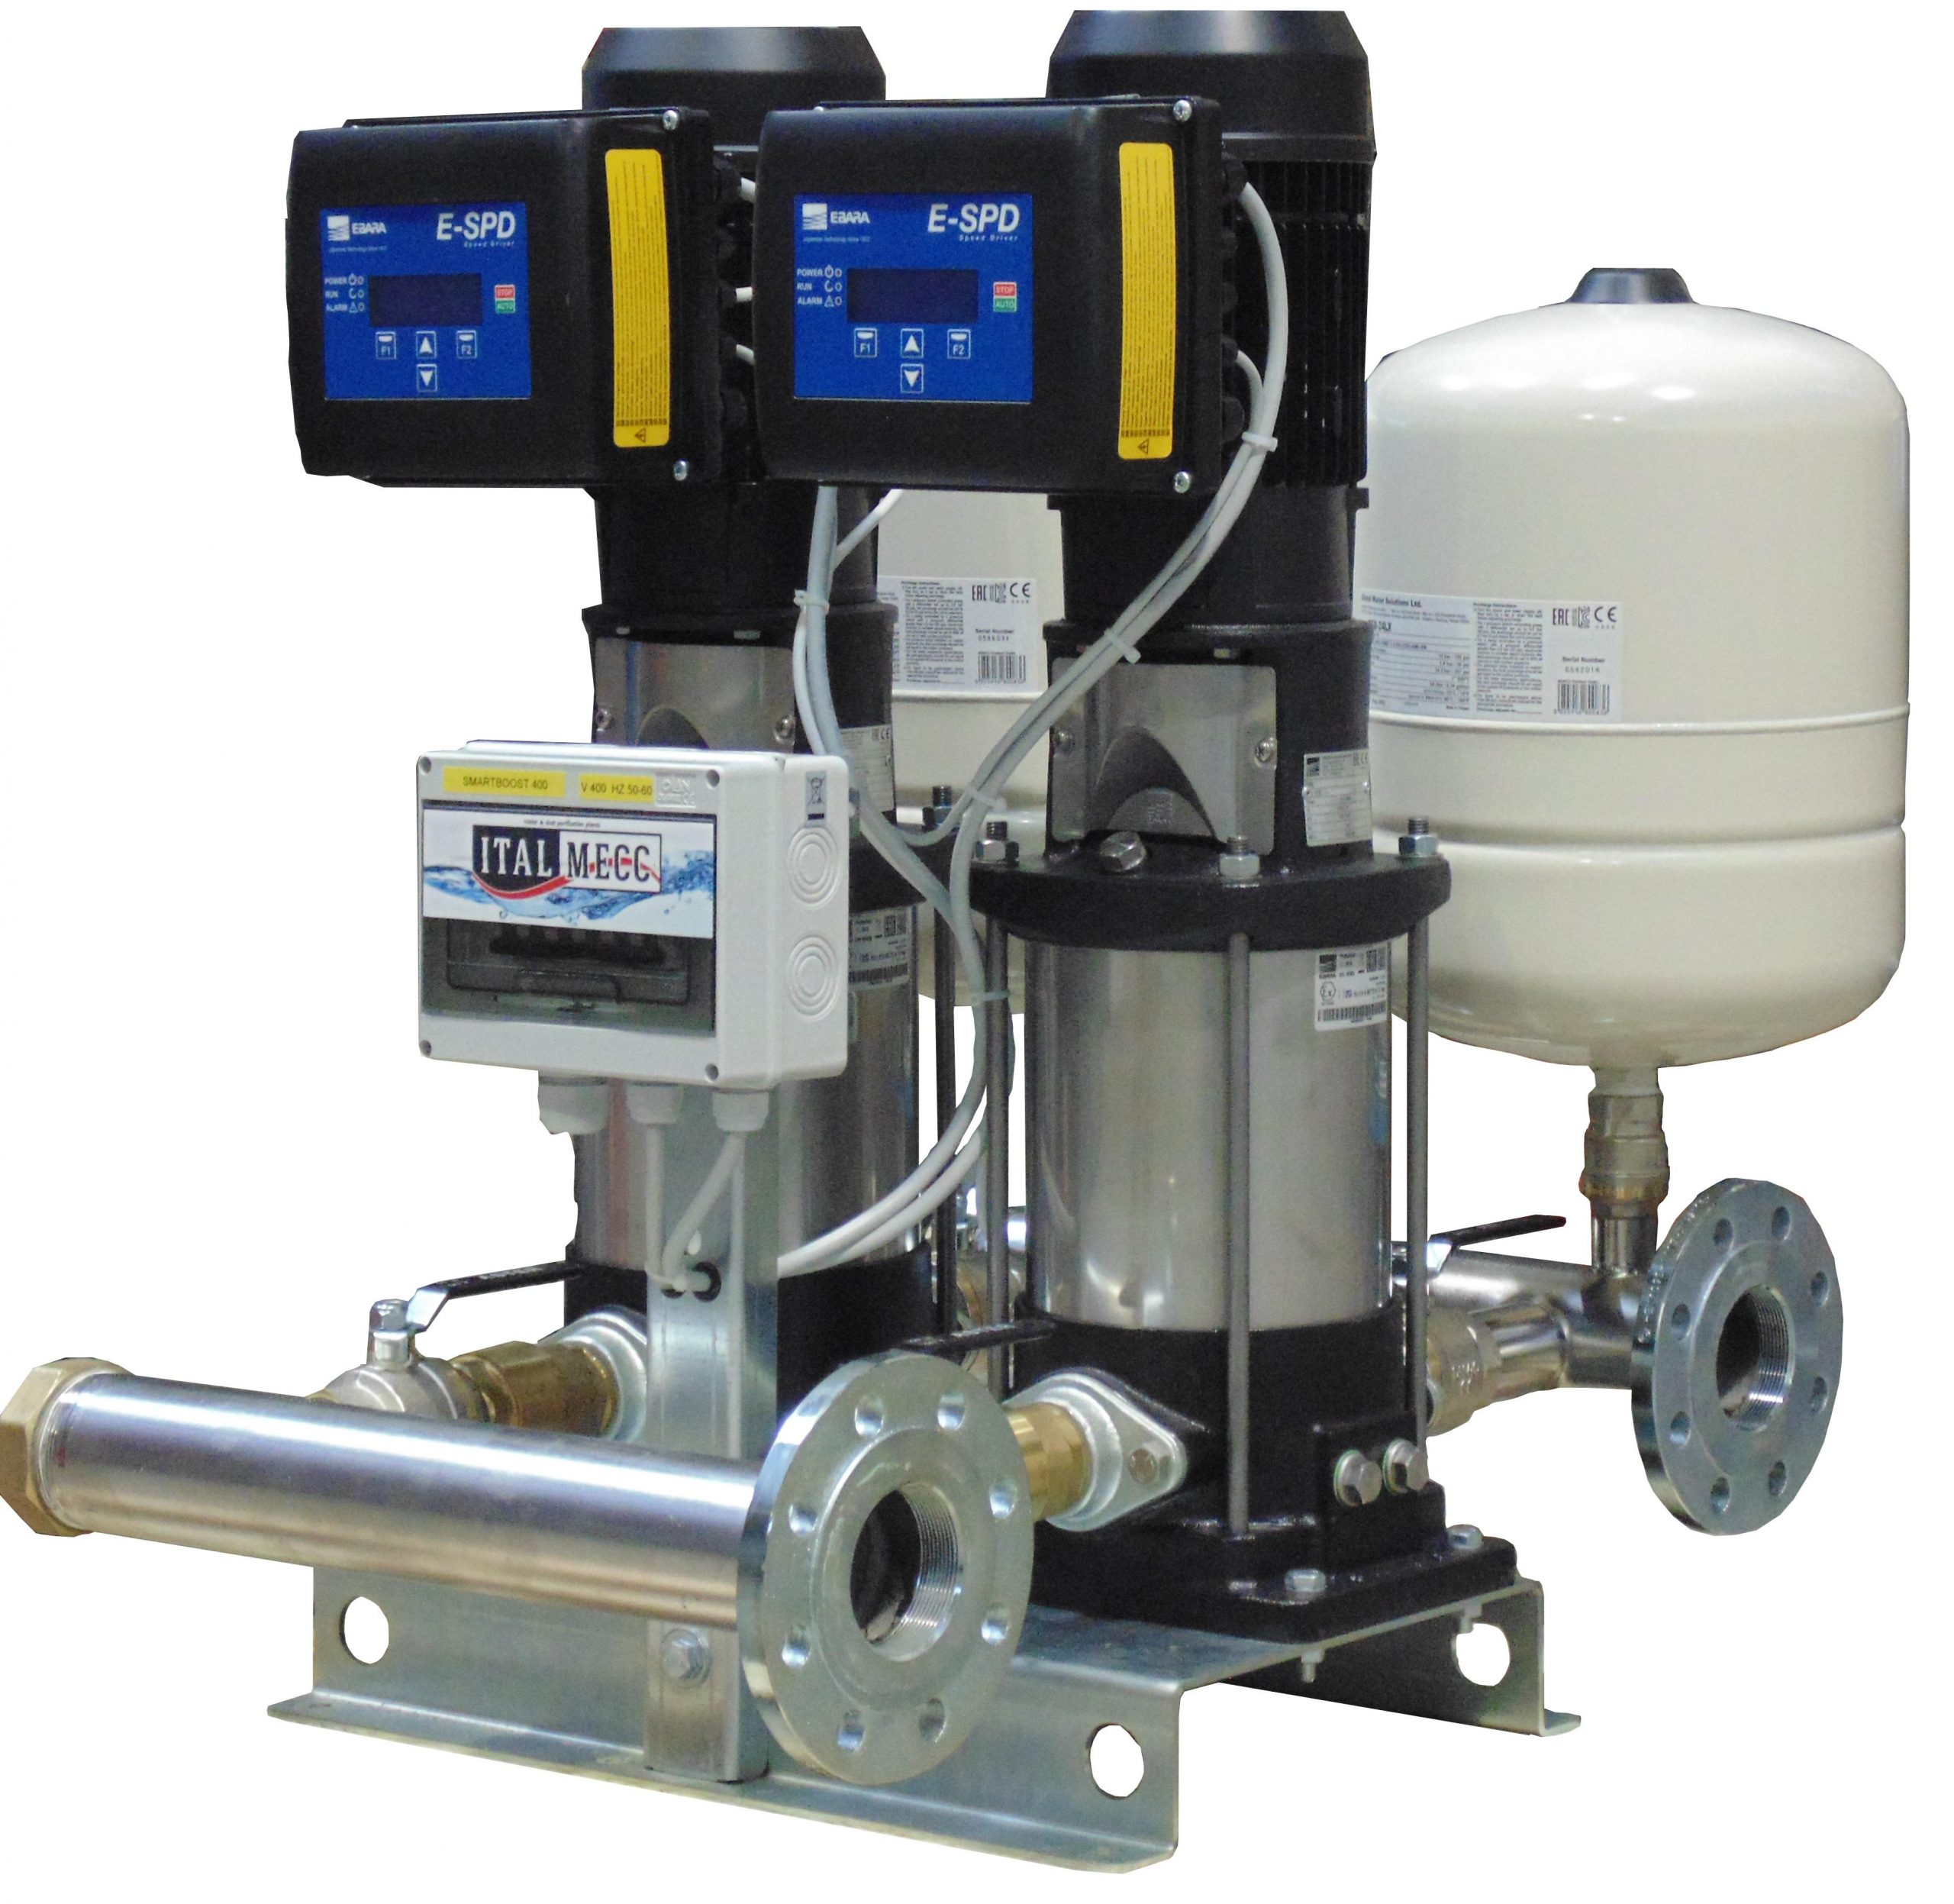 Smat Booster pumps with inverter technology